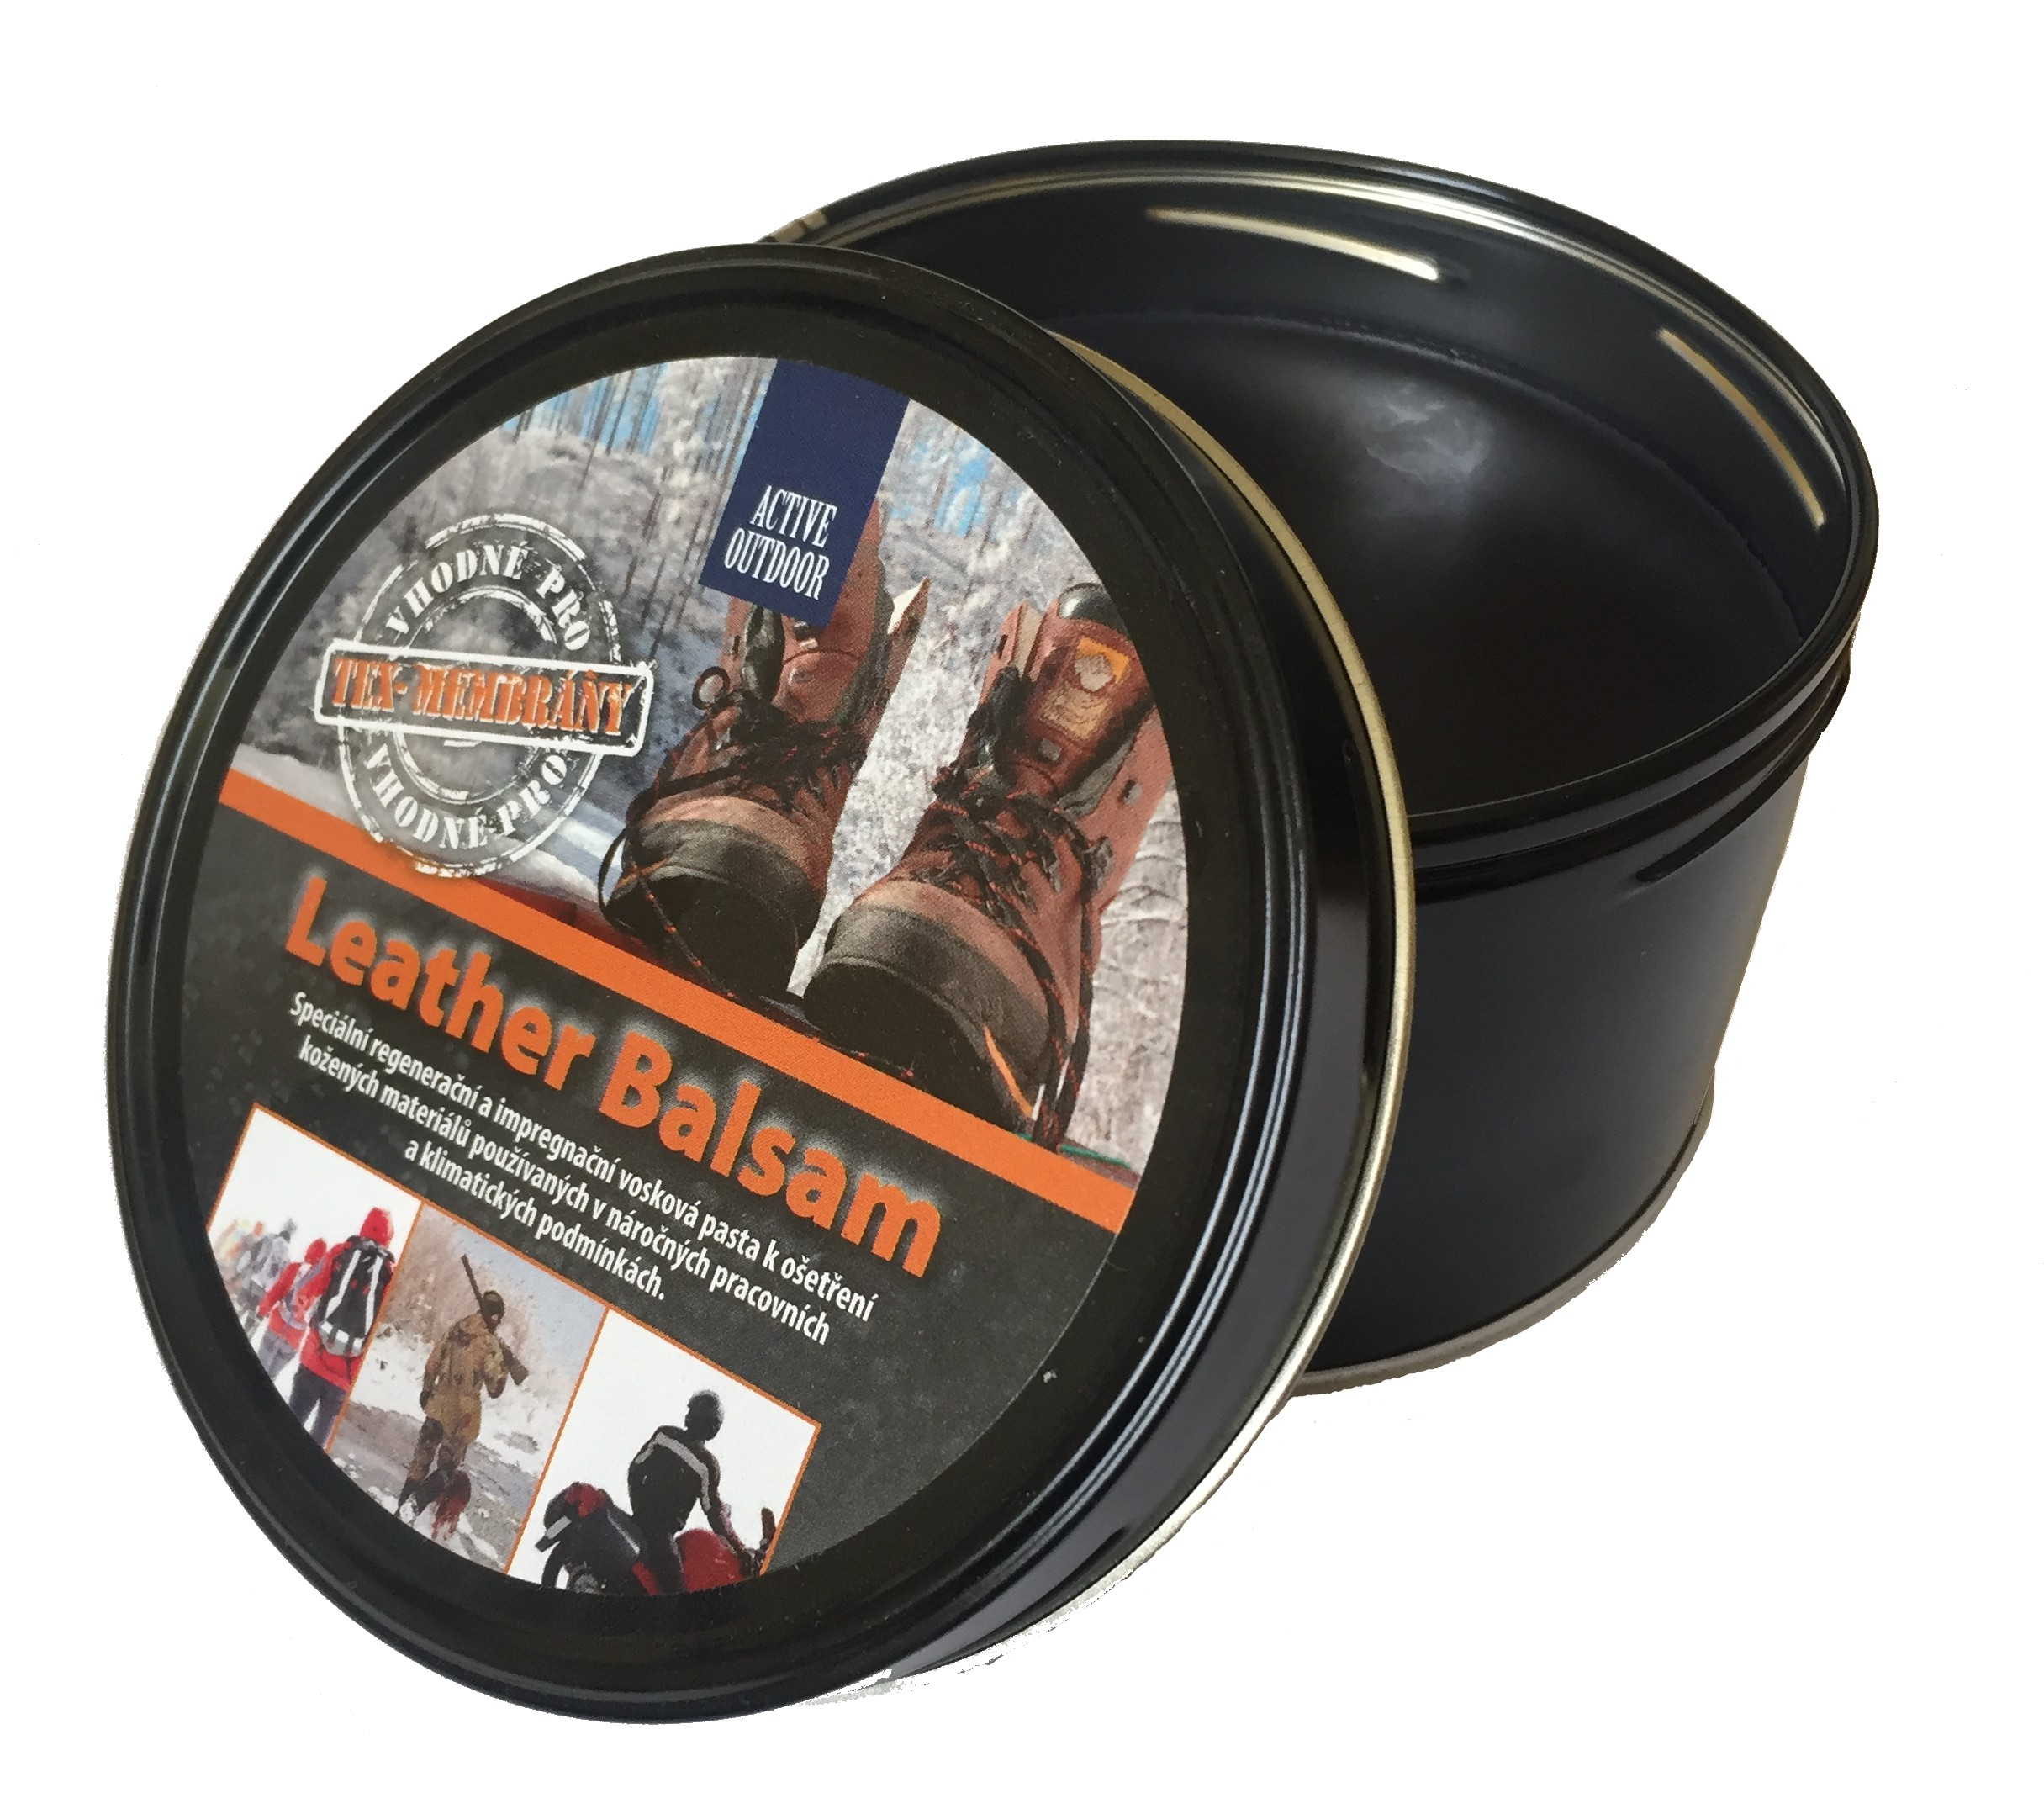 Active Outdoor leather balsam 250g